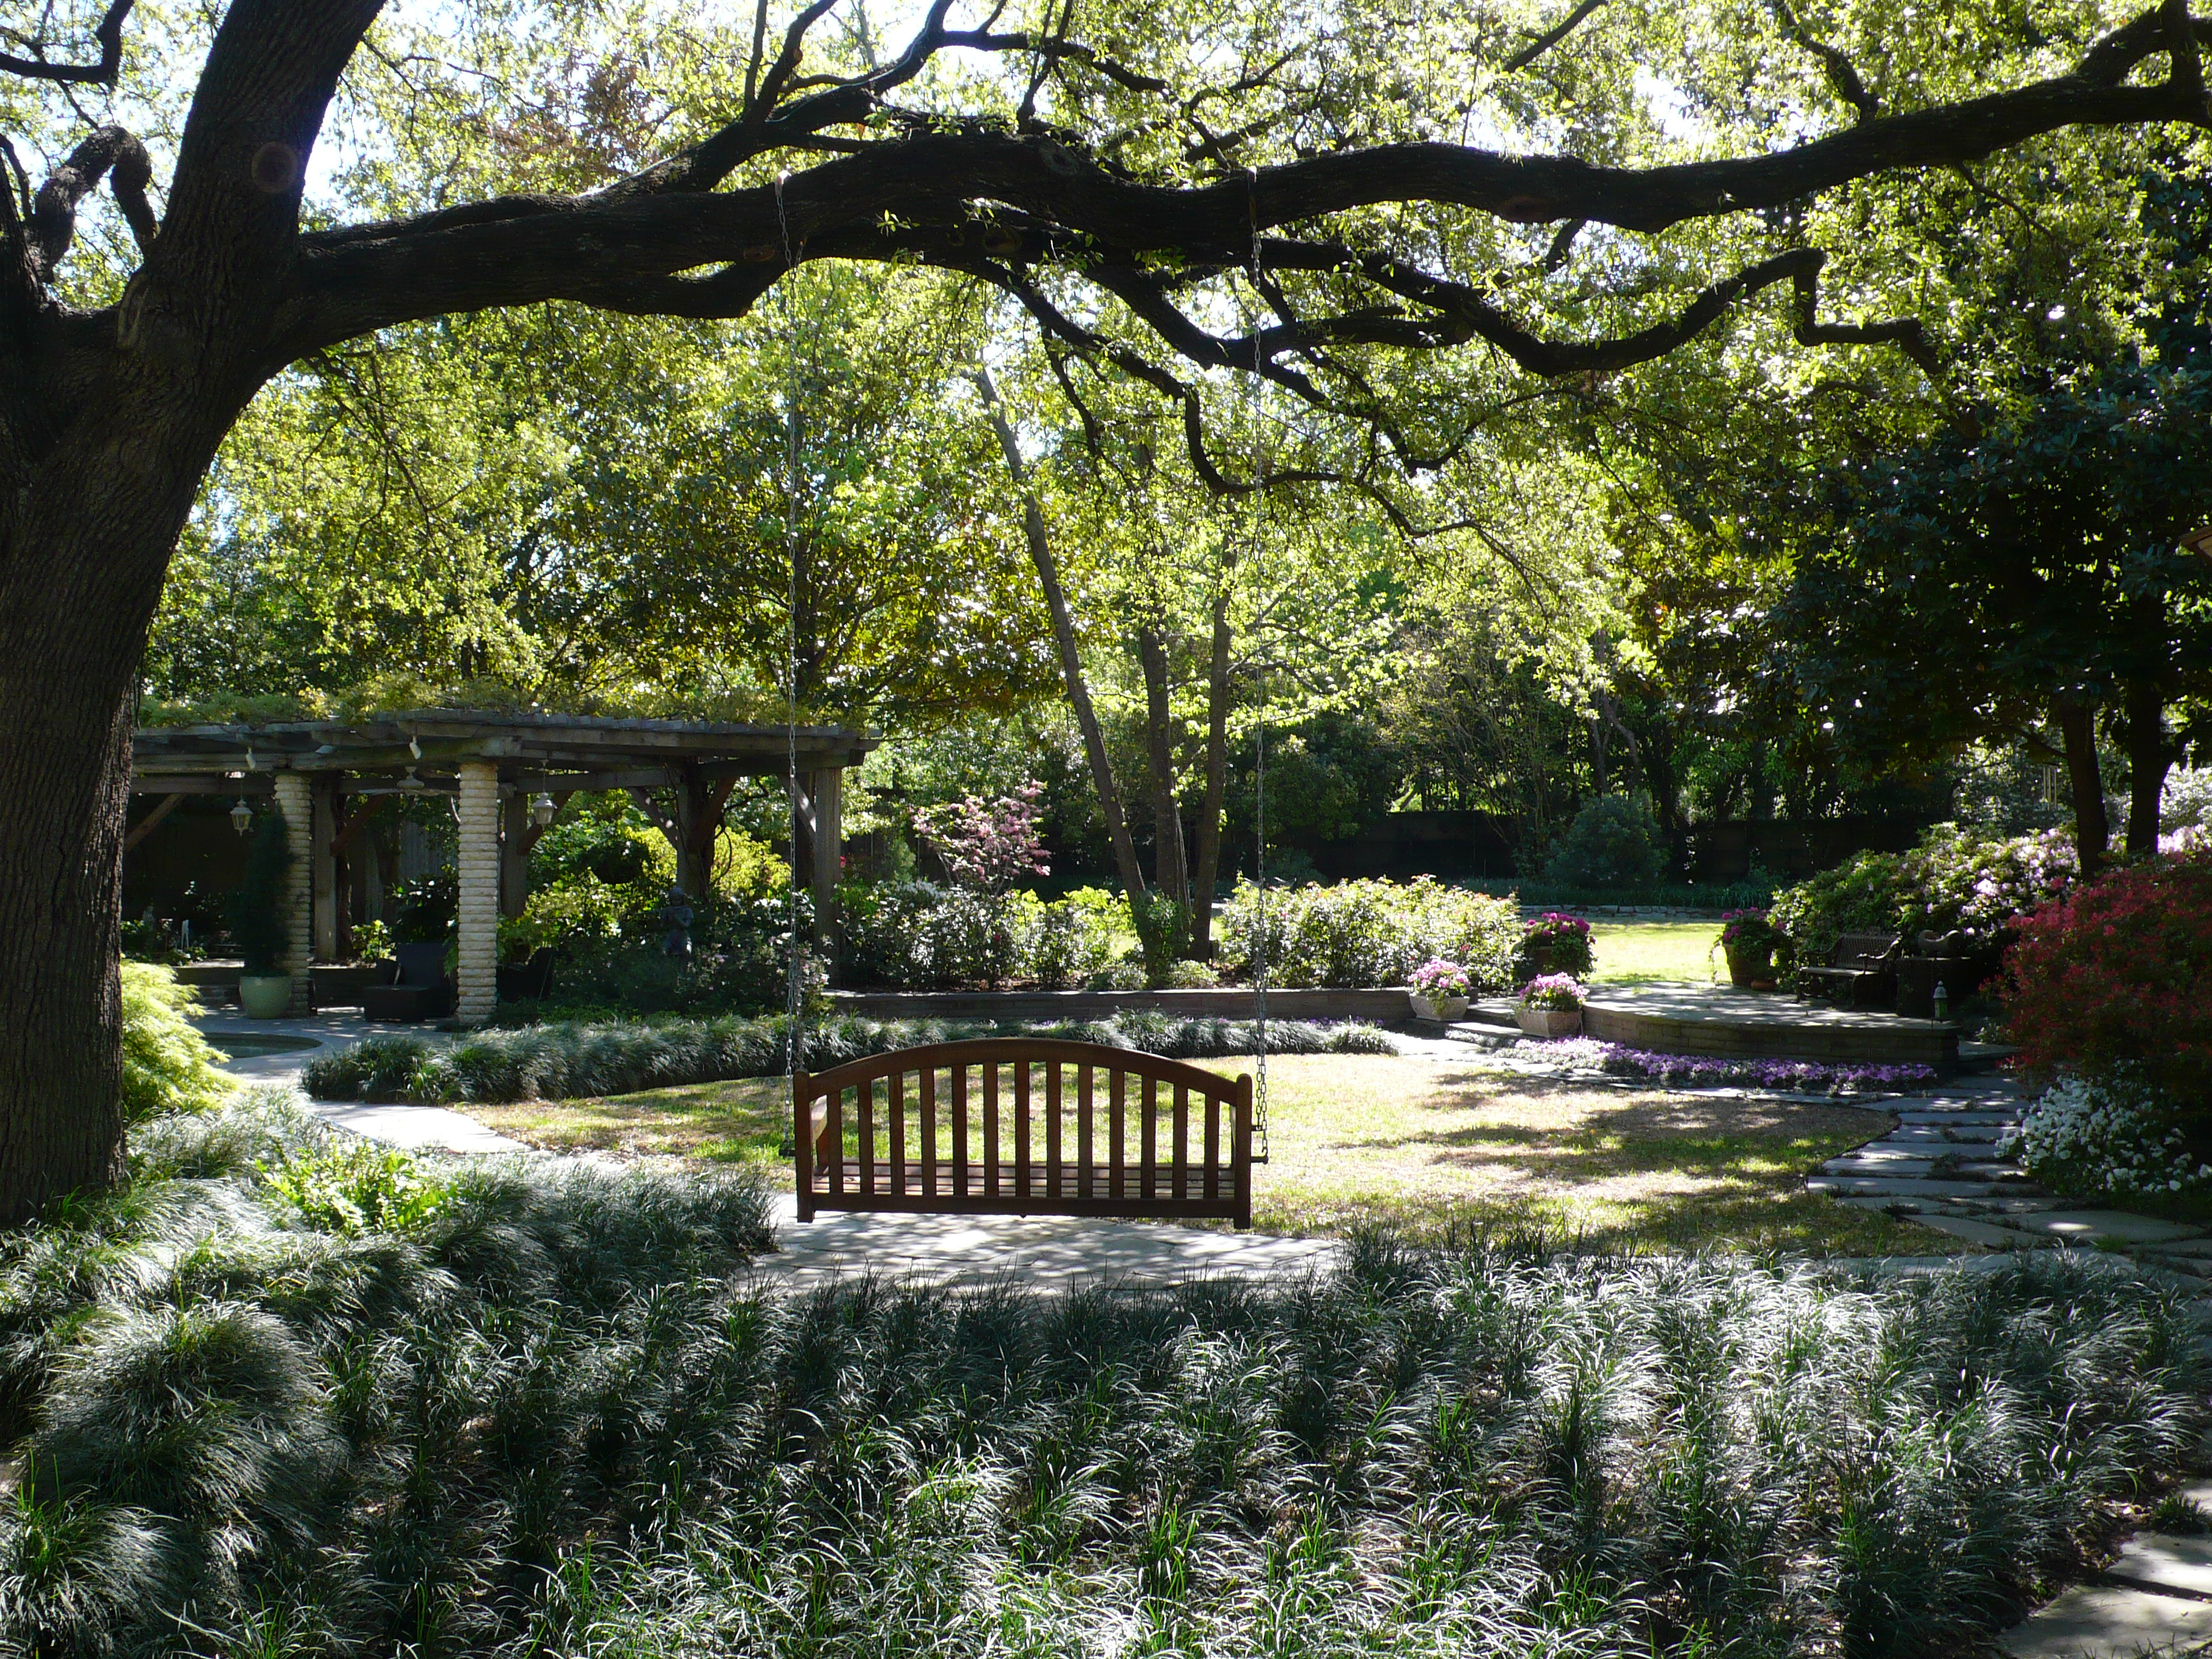 Five Spectacular Gardens By Members Of The Dallas County Master Garden  Association Will Be Featured On The 2016 Garden Tour Set For Saturday,  October 1st.